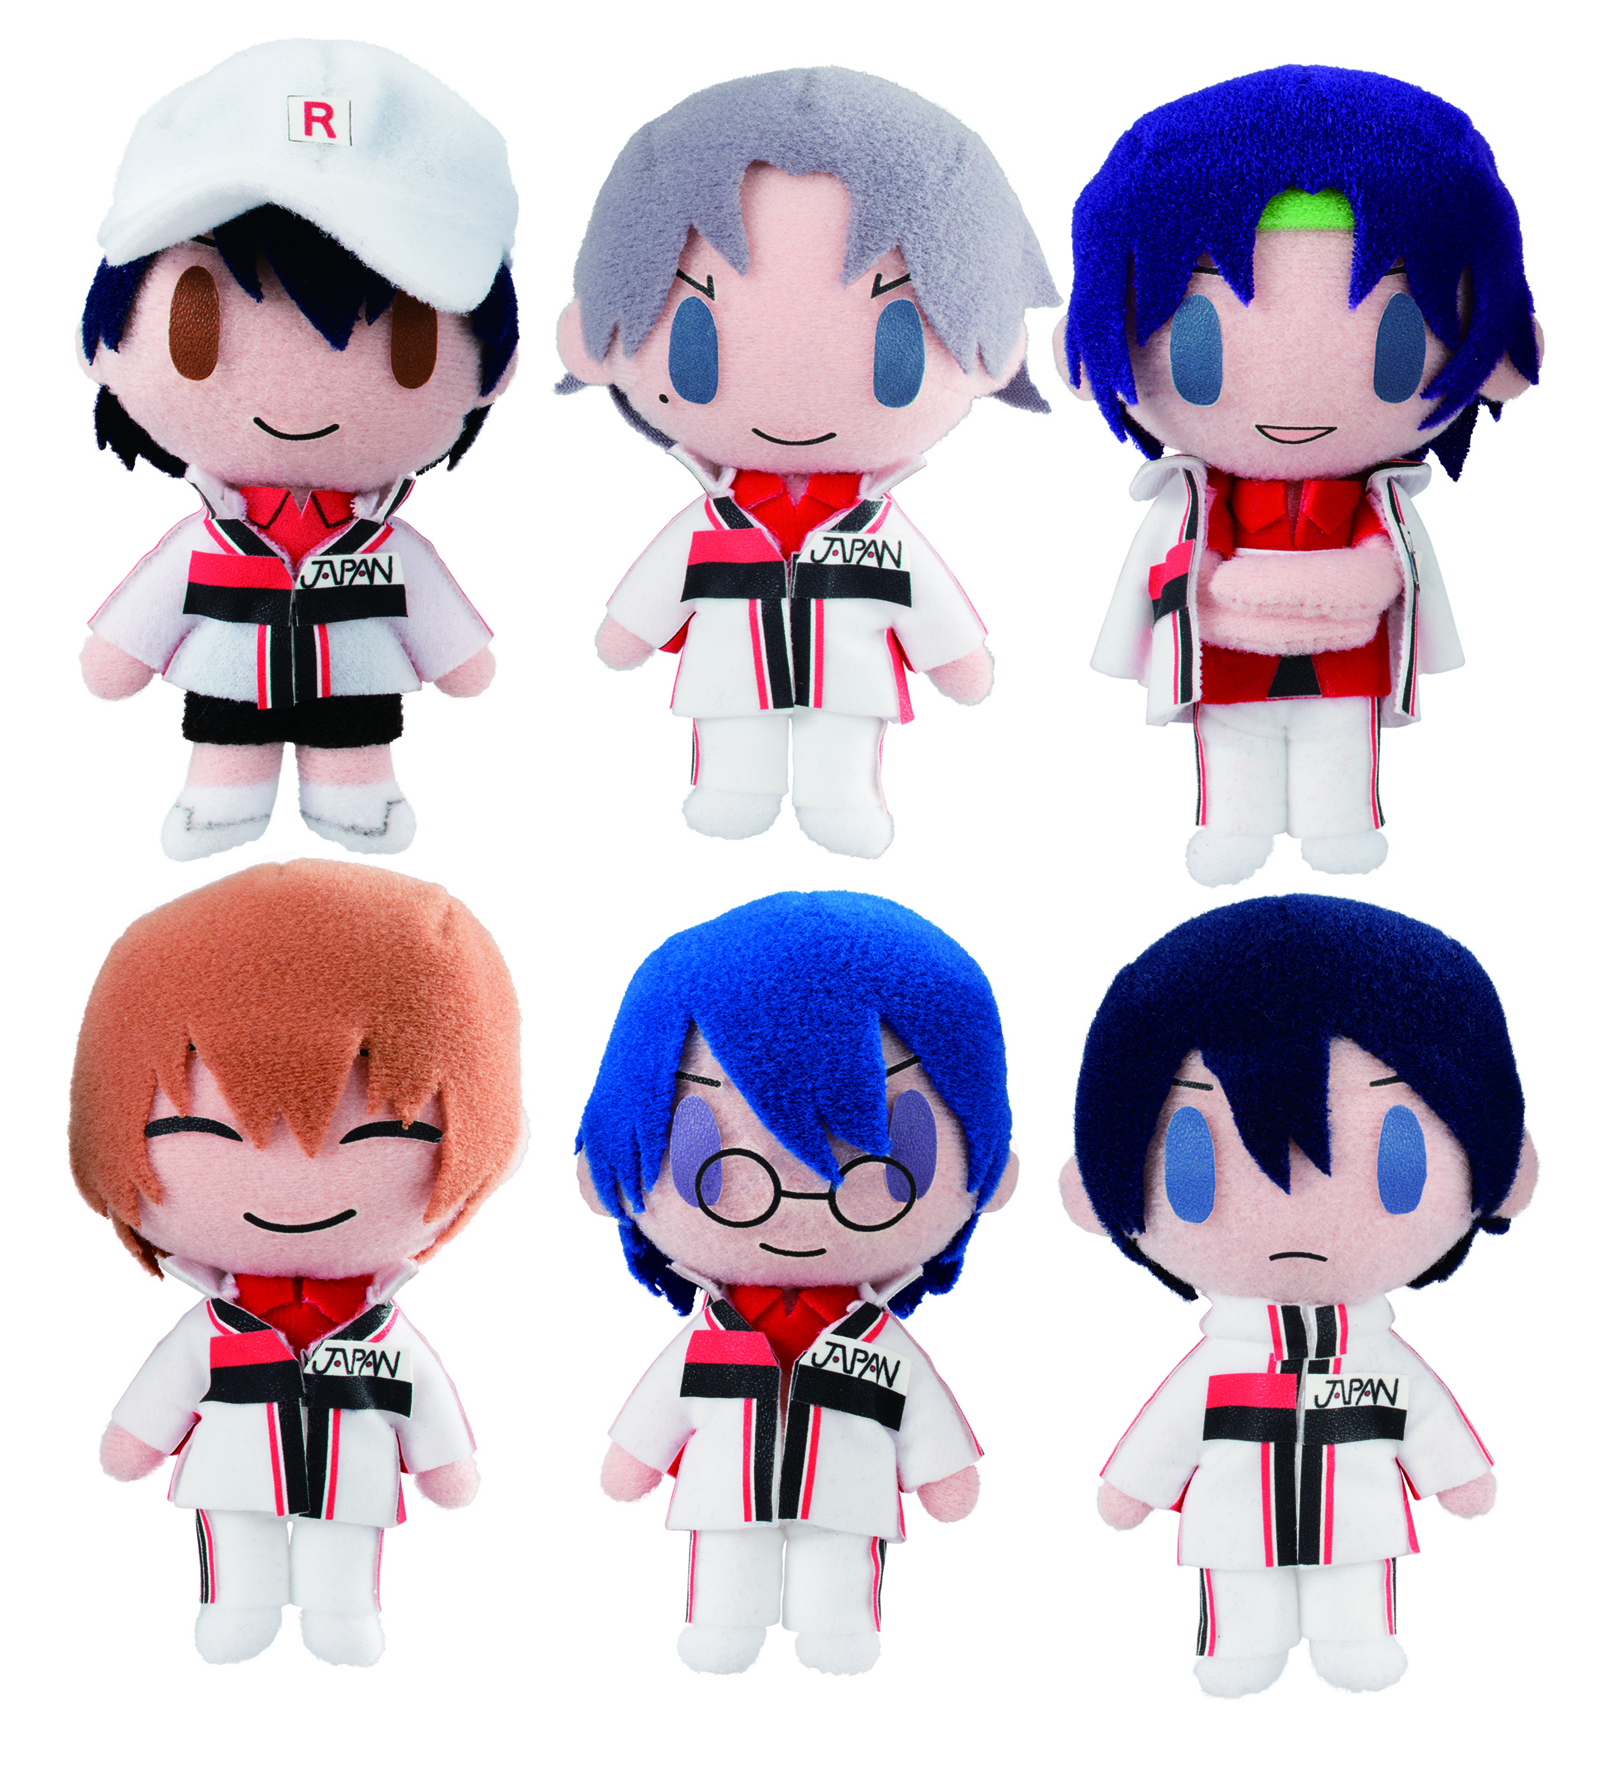 NEW PRINCE OF TENNIS GURUMITZ MINI PLUSH 6PC DS